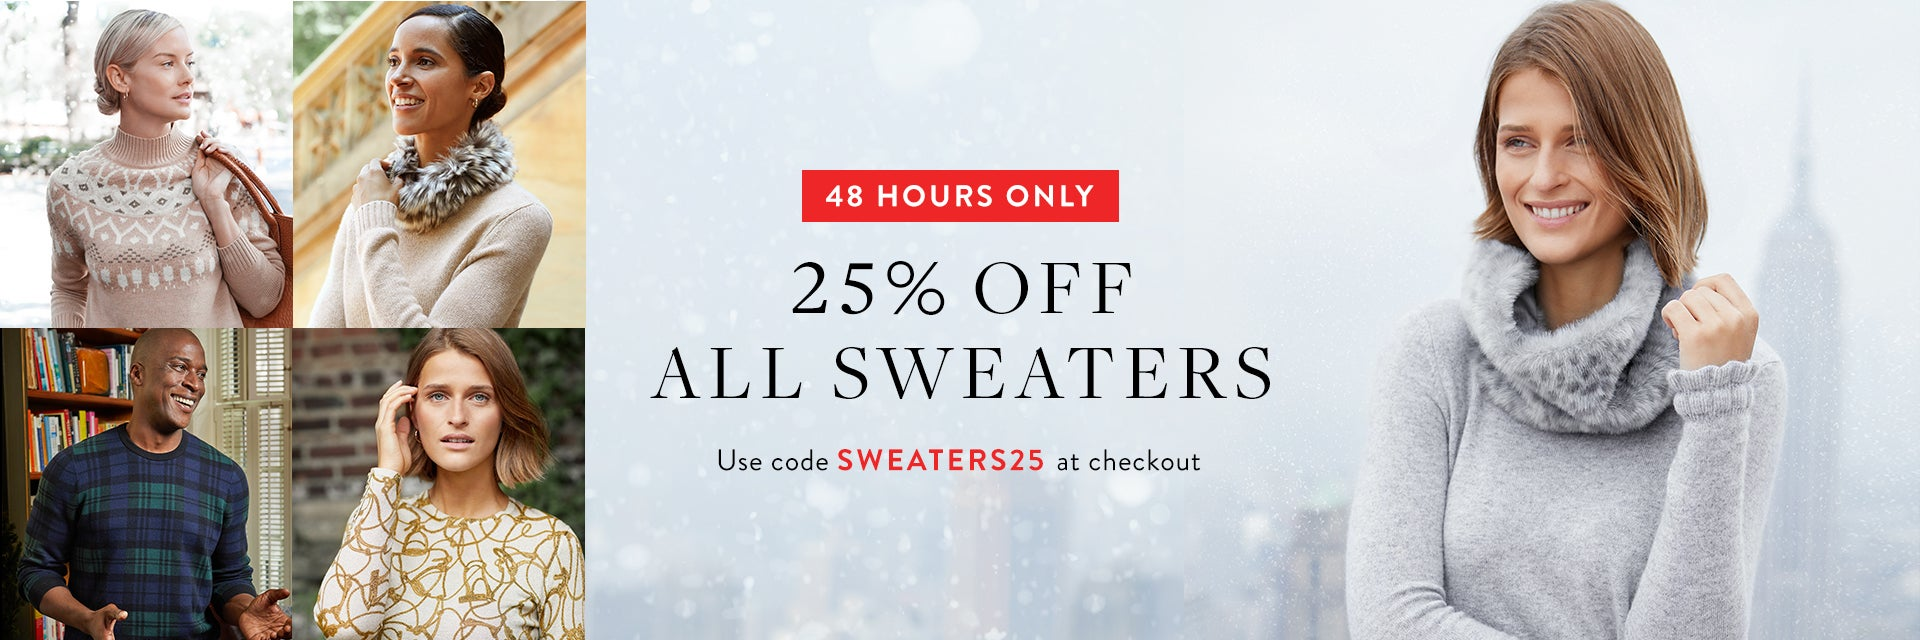 25% Off Sweaters Promo